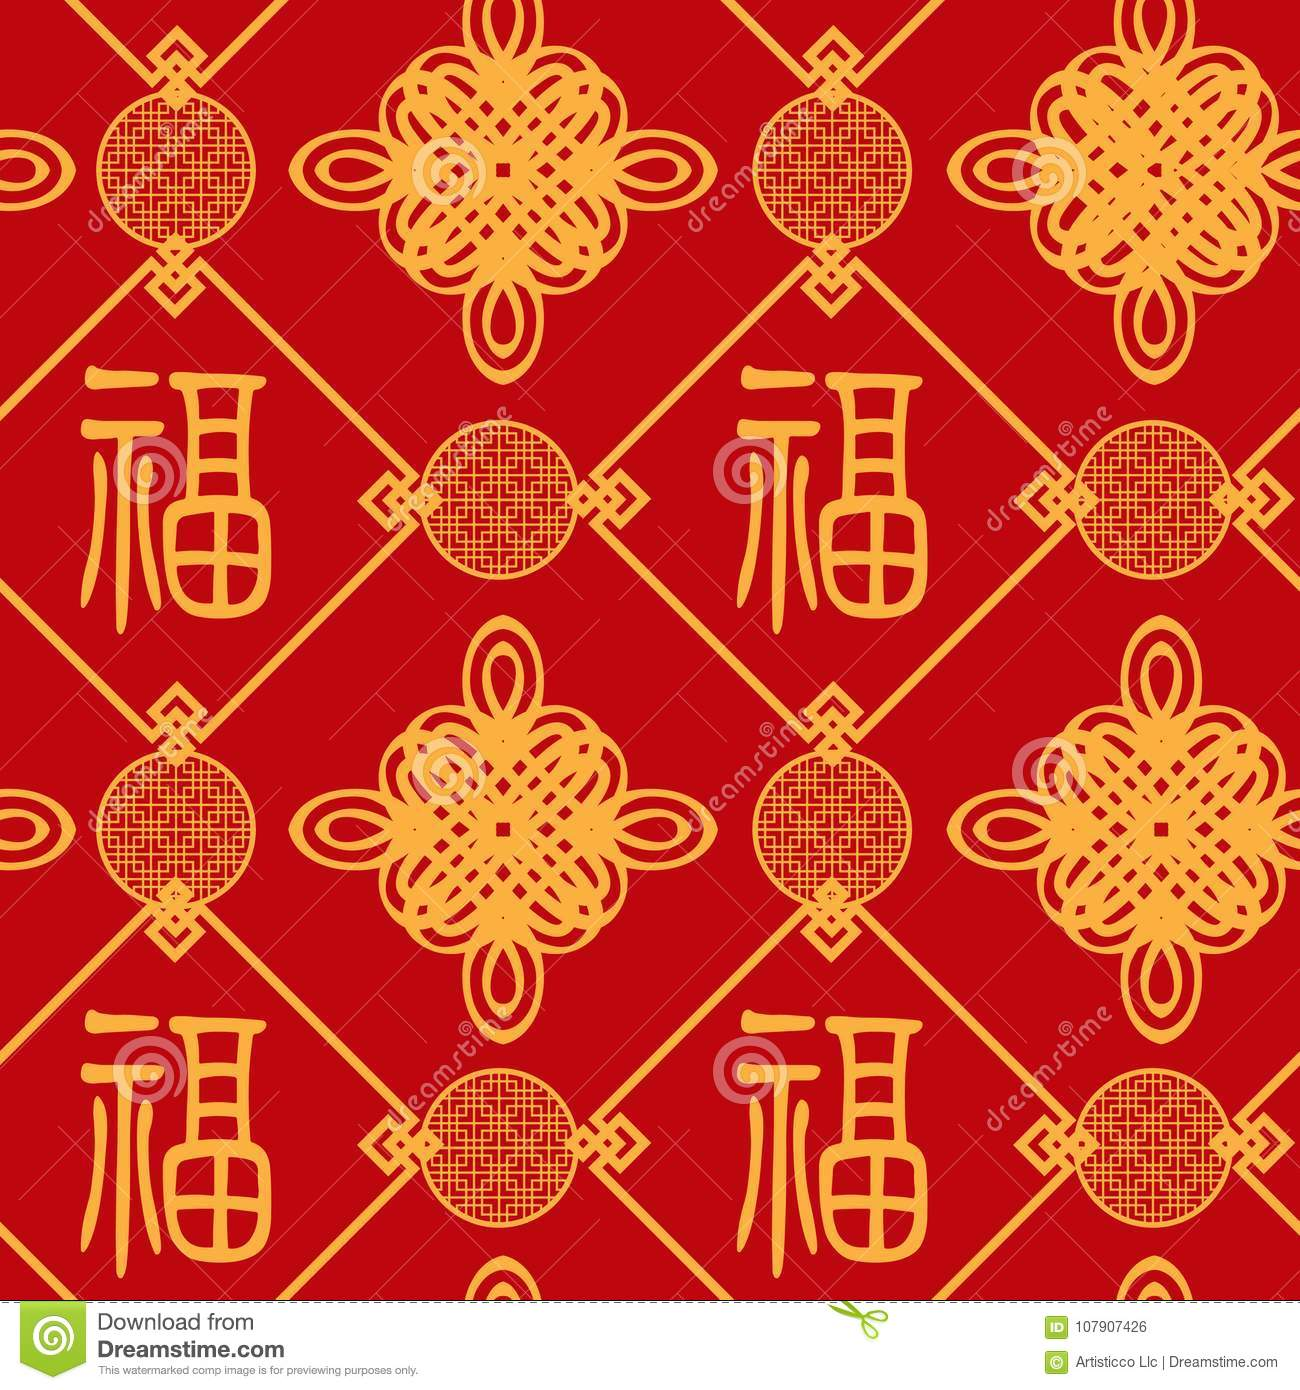 a vector illustration of chinese new year wallpaper seamless pattern background